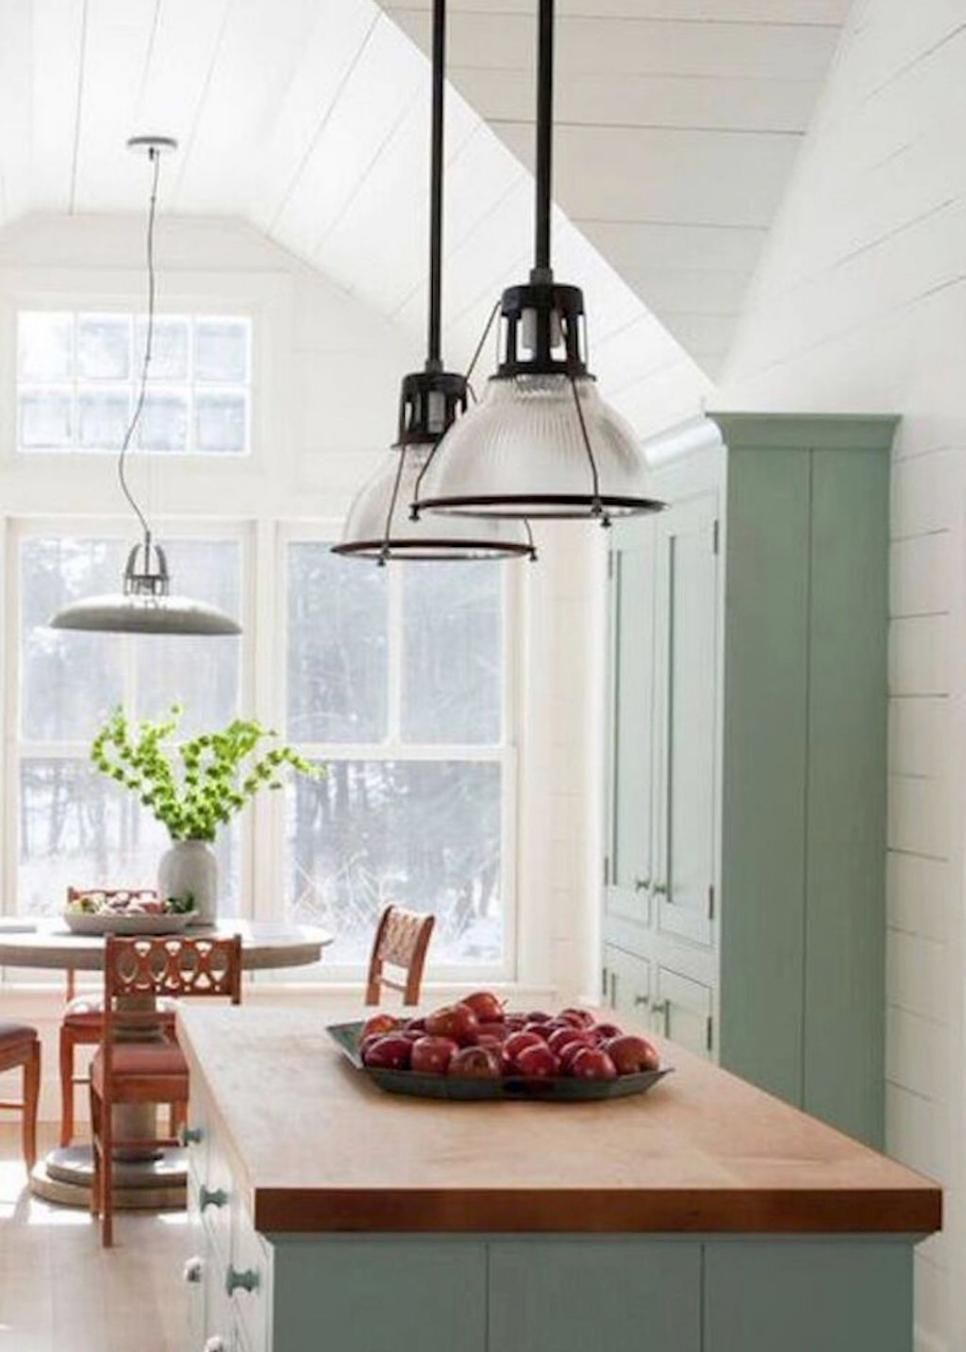 The Design Experts At Hgtv Share Photos Of A Charming Cottage Style Kitchen With Soft Mint Green Cabinets